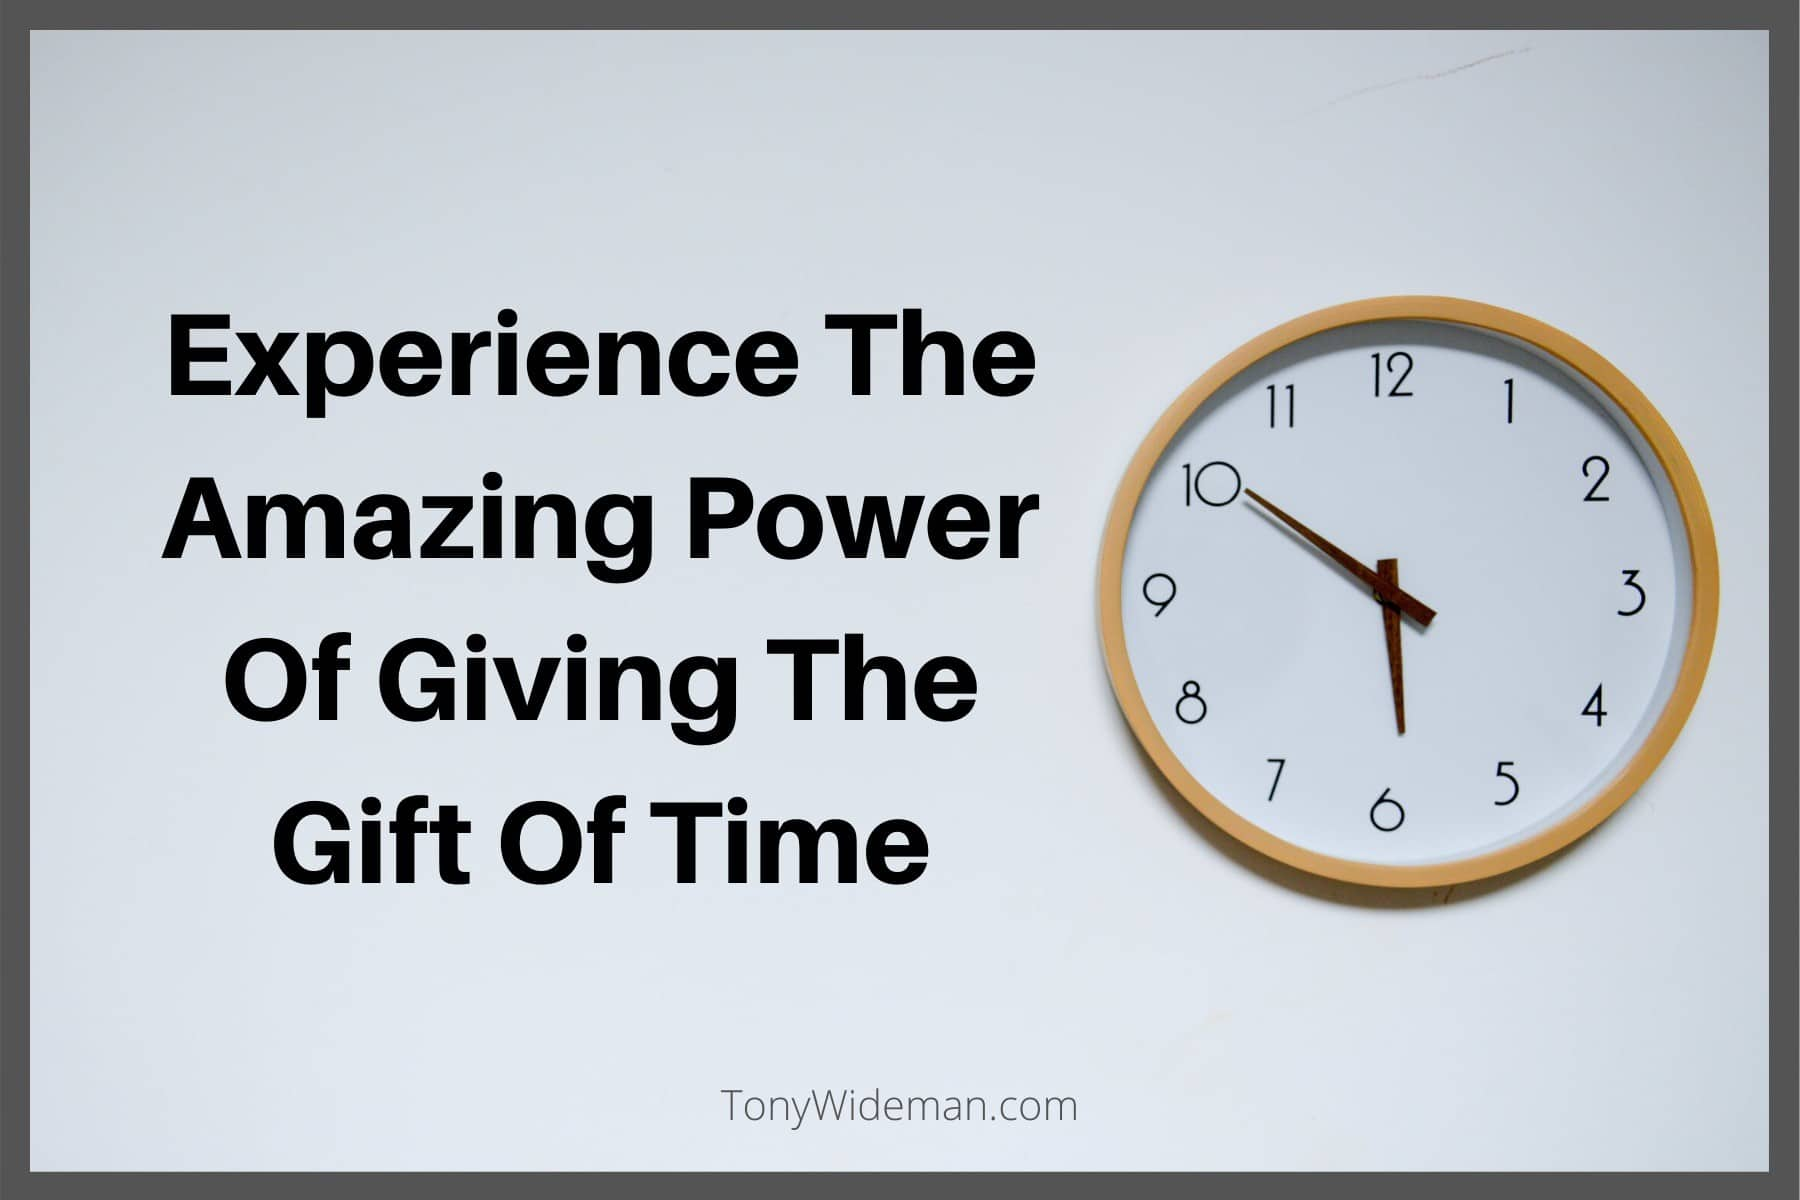 Experience The Amazing Power Of Giving The Gift Of Time